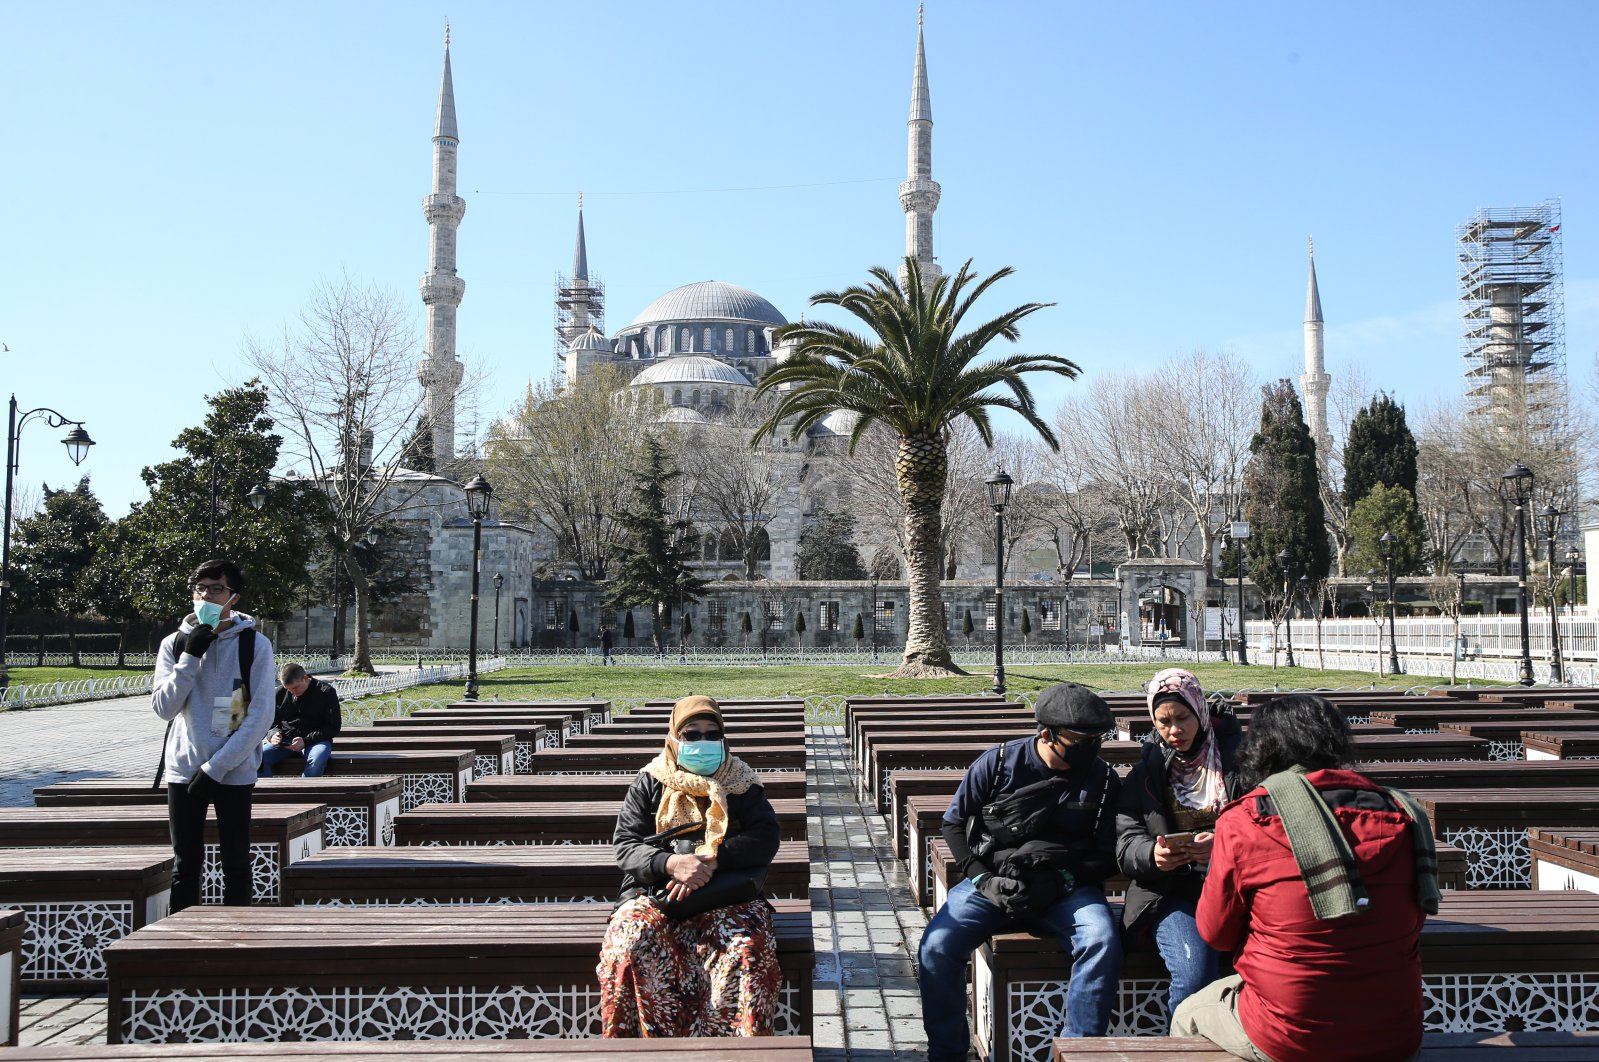 Tourists are seen near Sultanahmet Mosque, also known as the Blue Mosque, during the coronavirus outbreak, Istanbul, Turkey, March 21, 2020. (AA Photo)